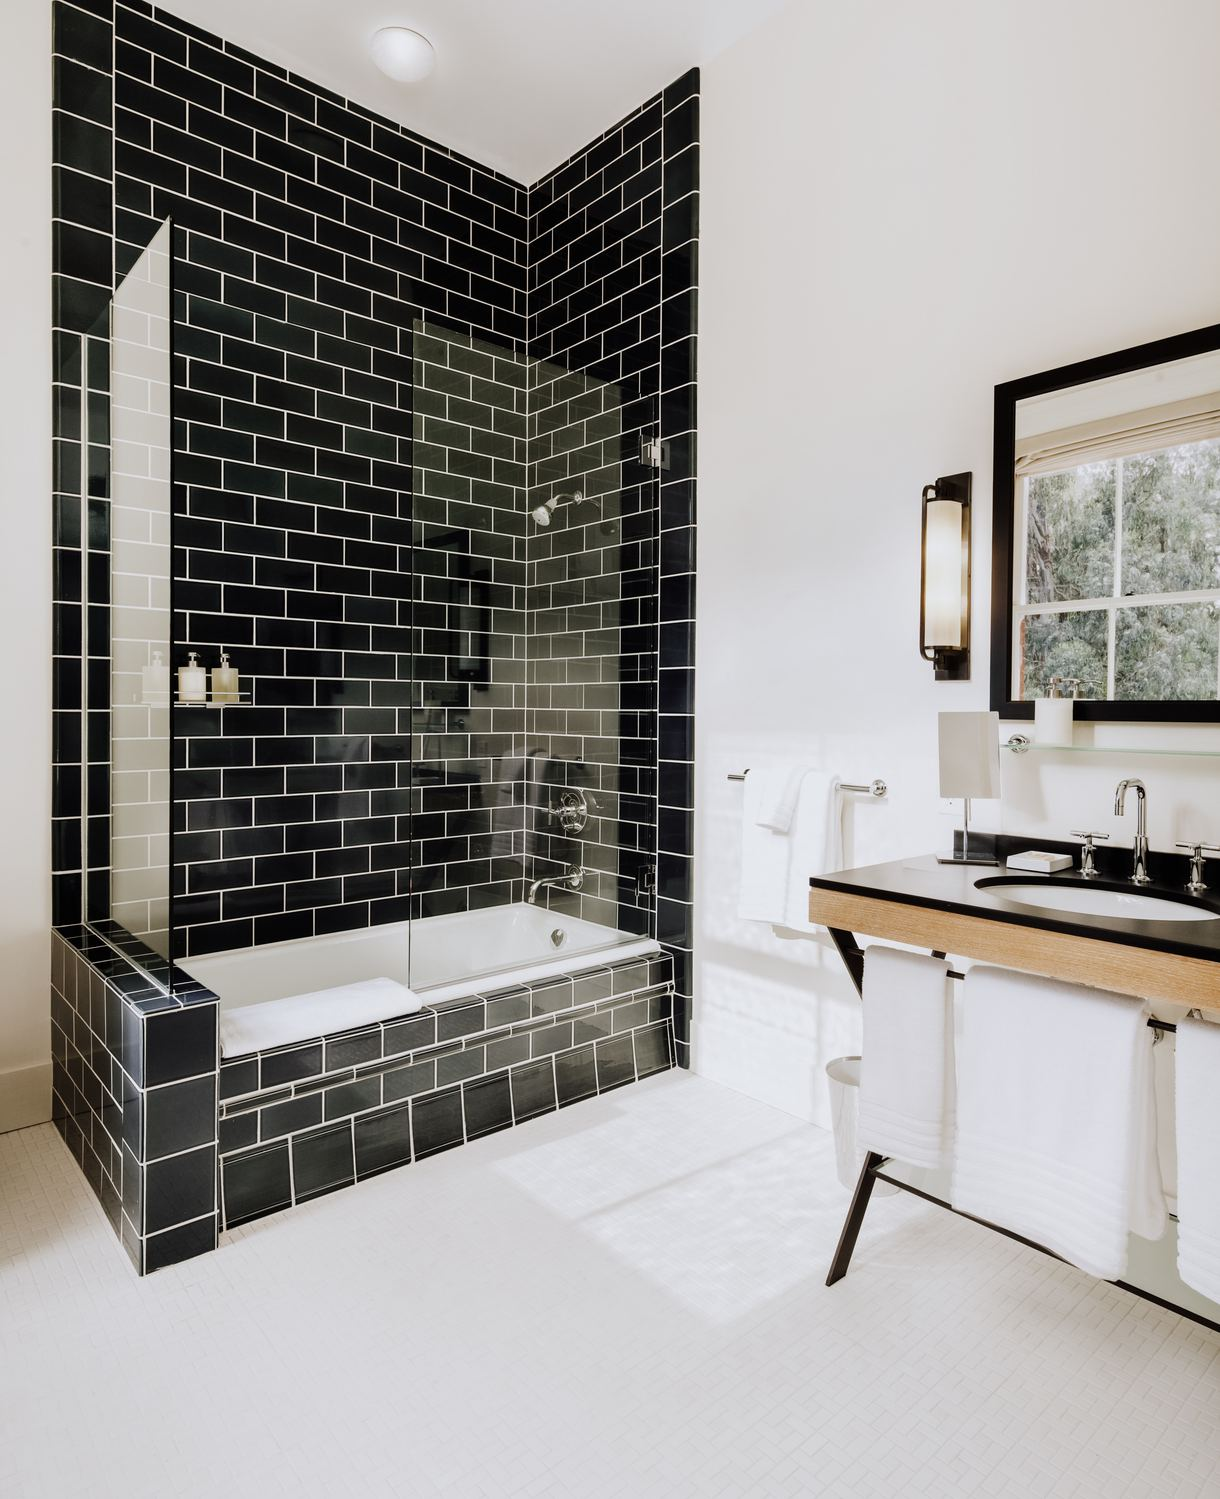 Locally made bath products are provided in each contemporary bathroom.